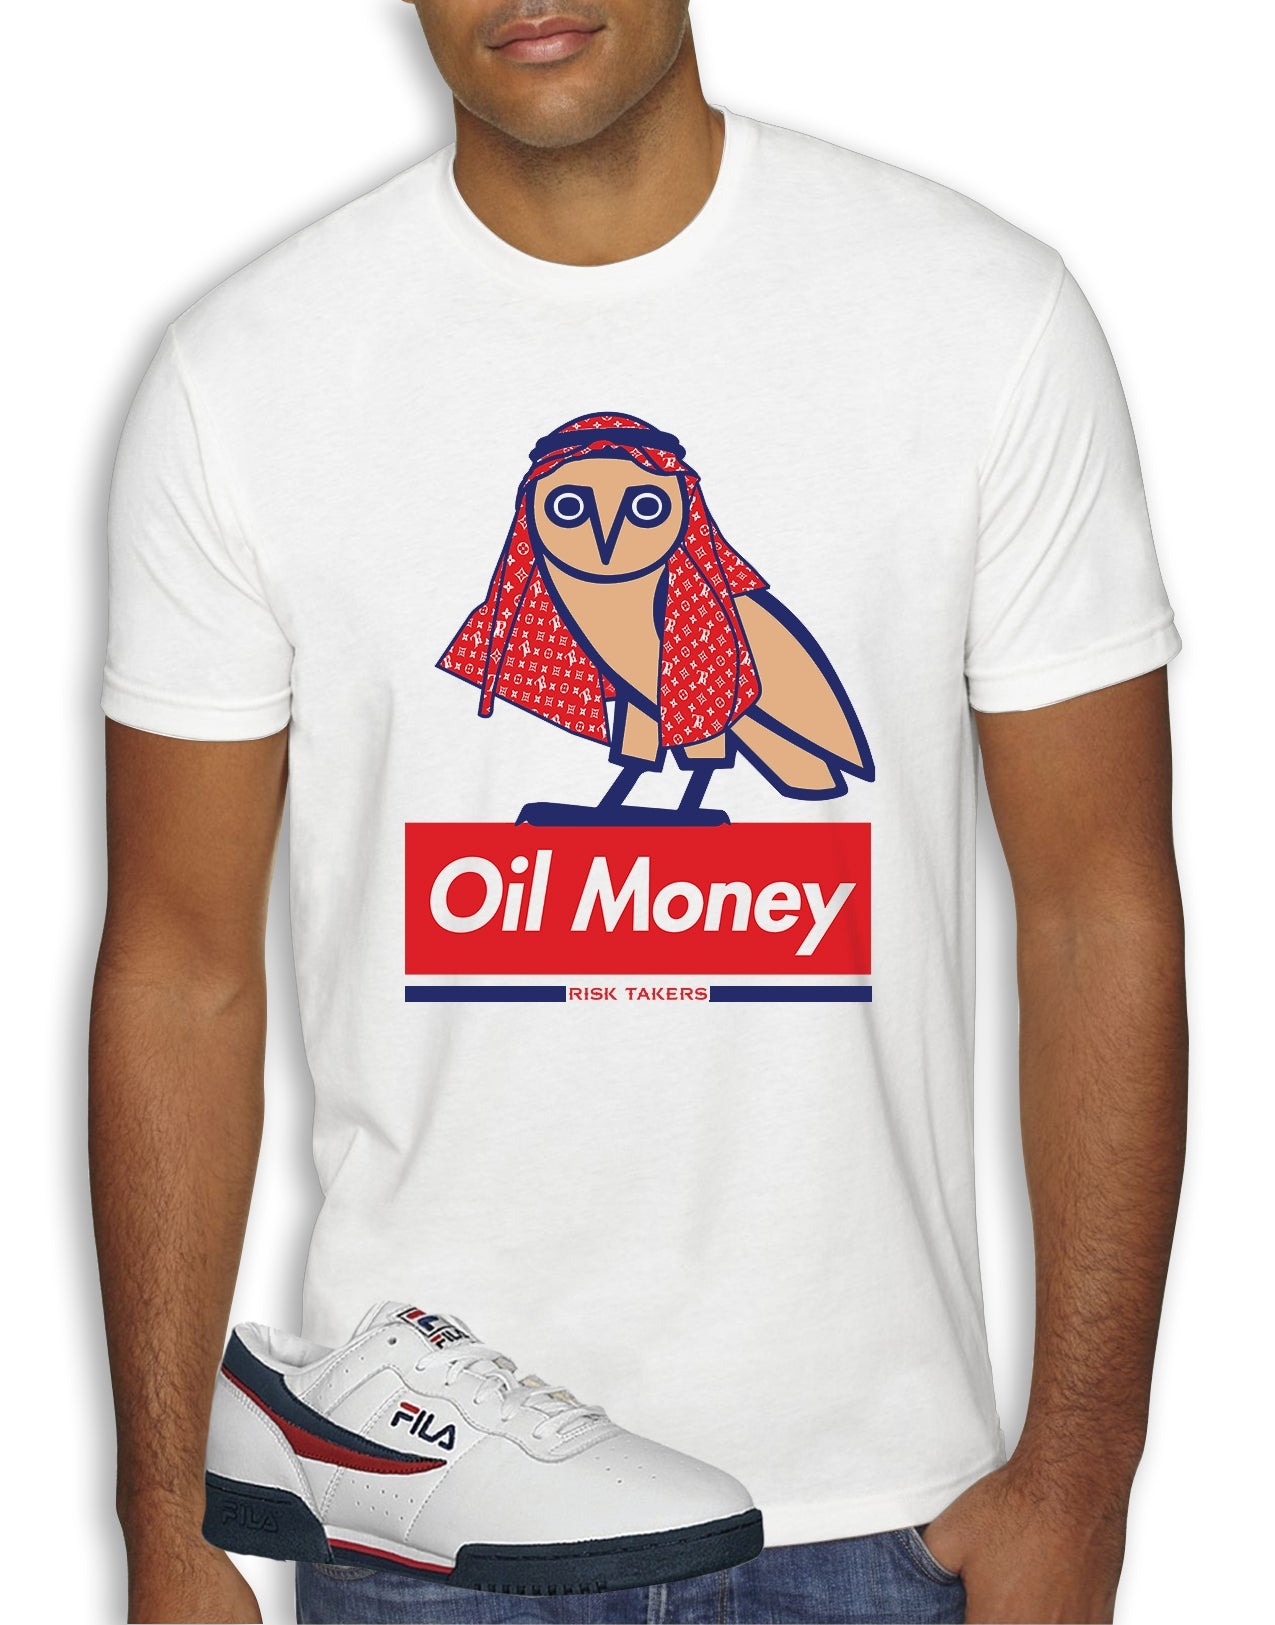 OIL MONEY